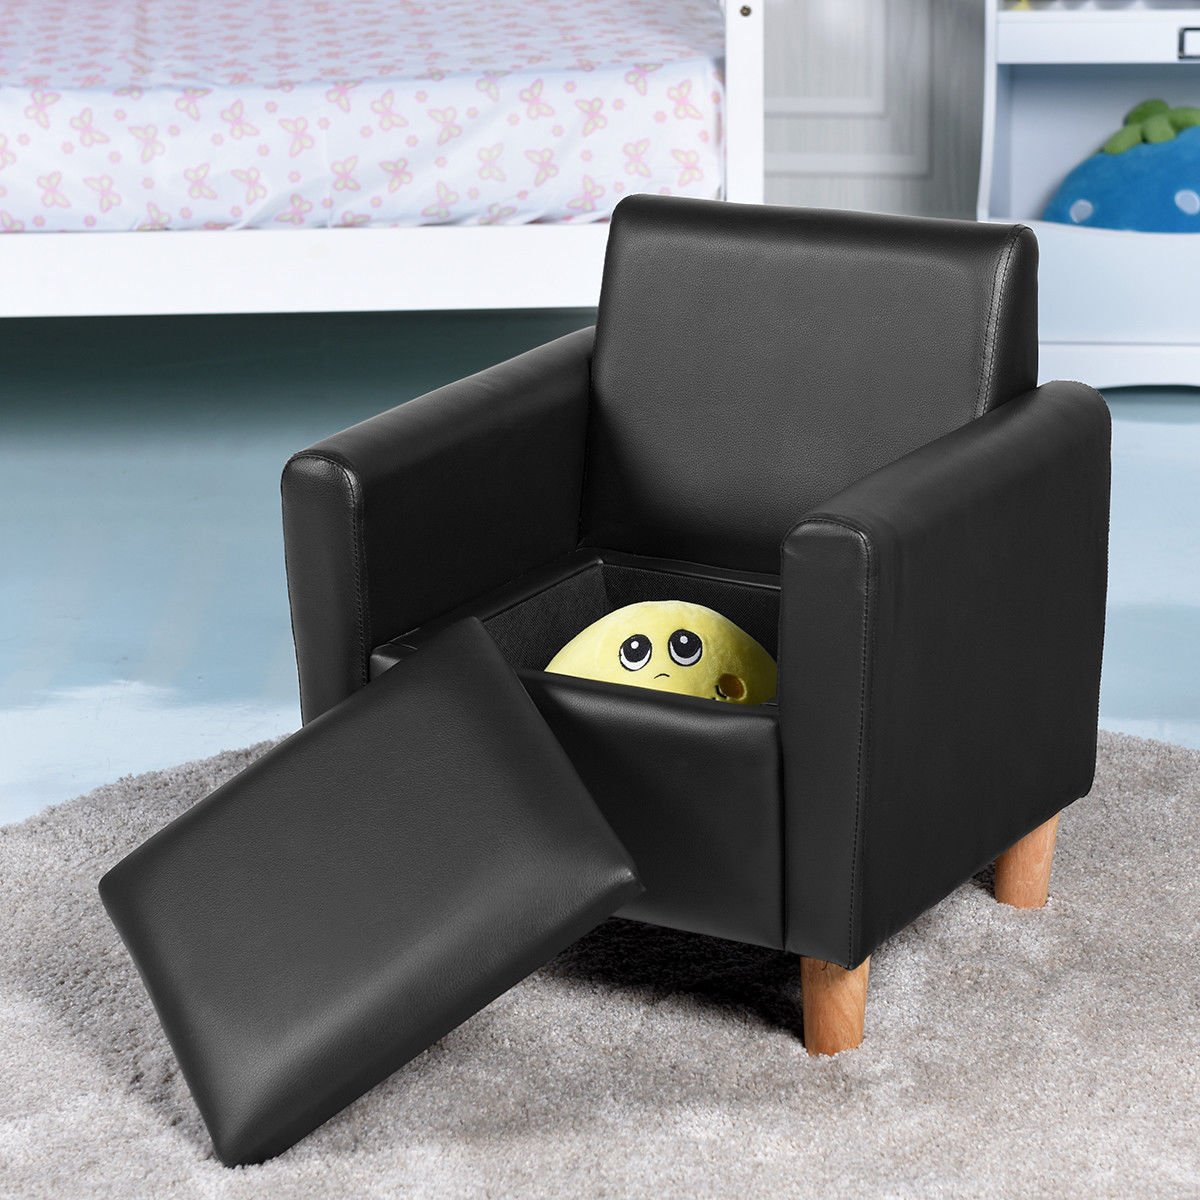 Costzon Kids Sofa, Upholstered Armrest, Sturdy Wood Construction, Toddler Couch With Storage Box (Single Seat, Black)